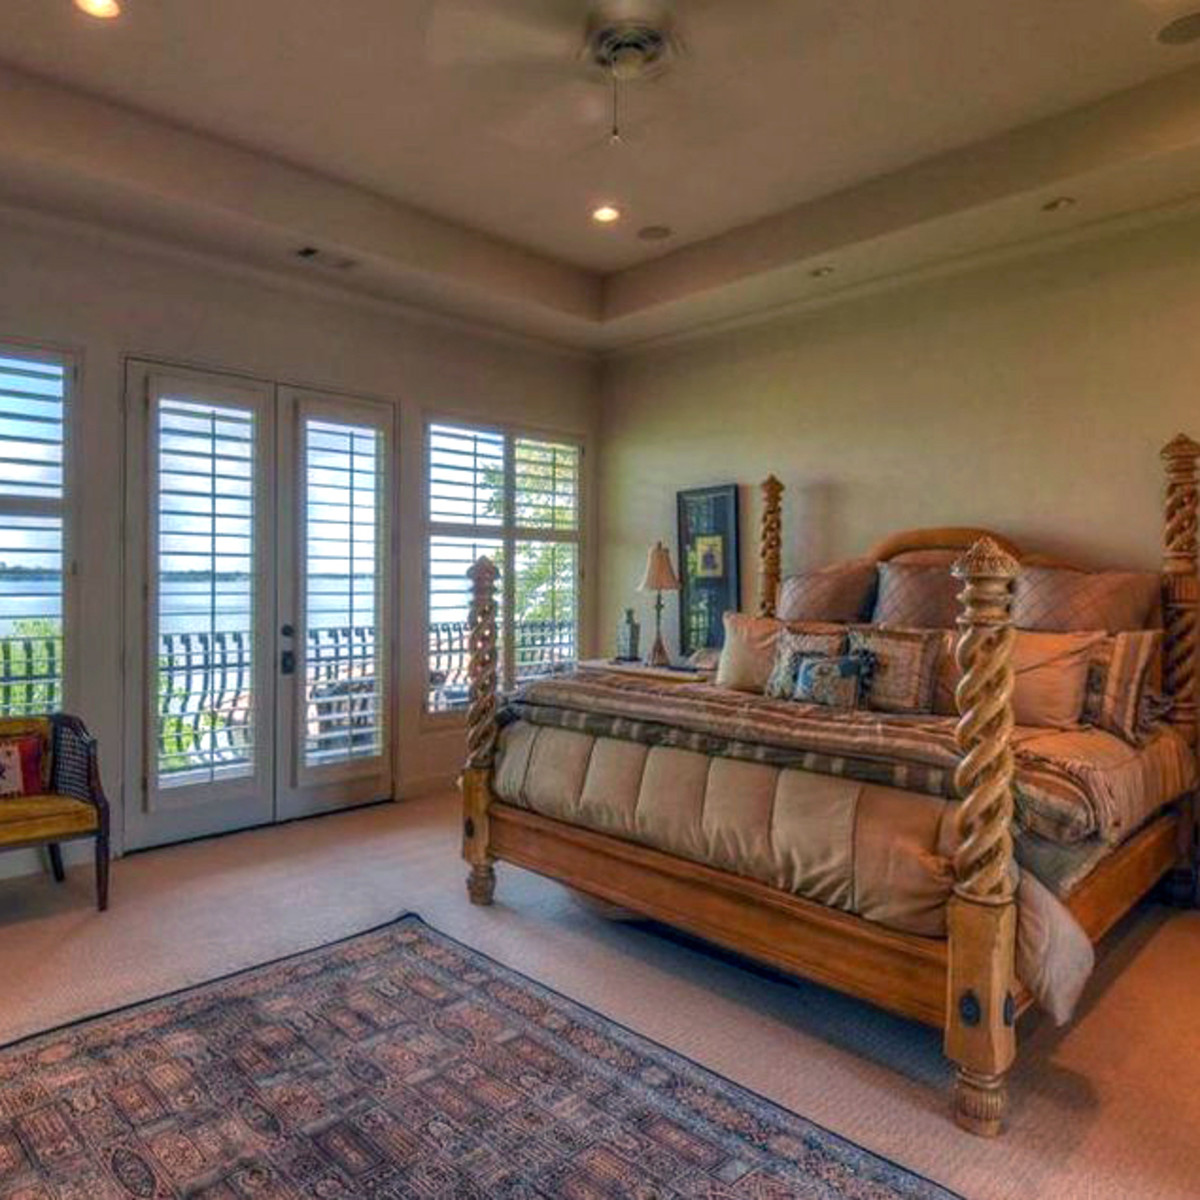 Rex Tillerson home at Horseshoe Bay, master bedroom